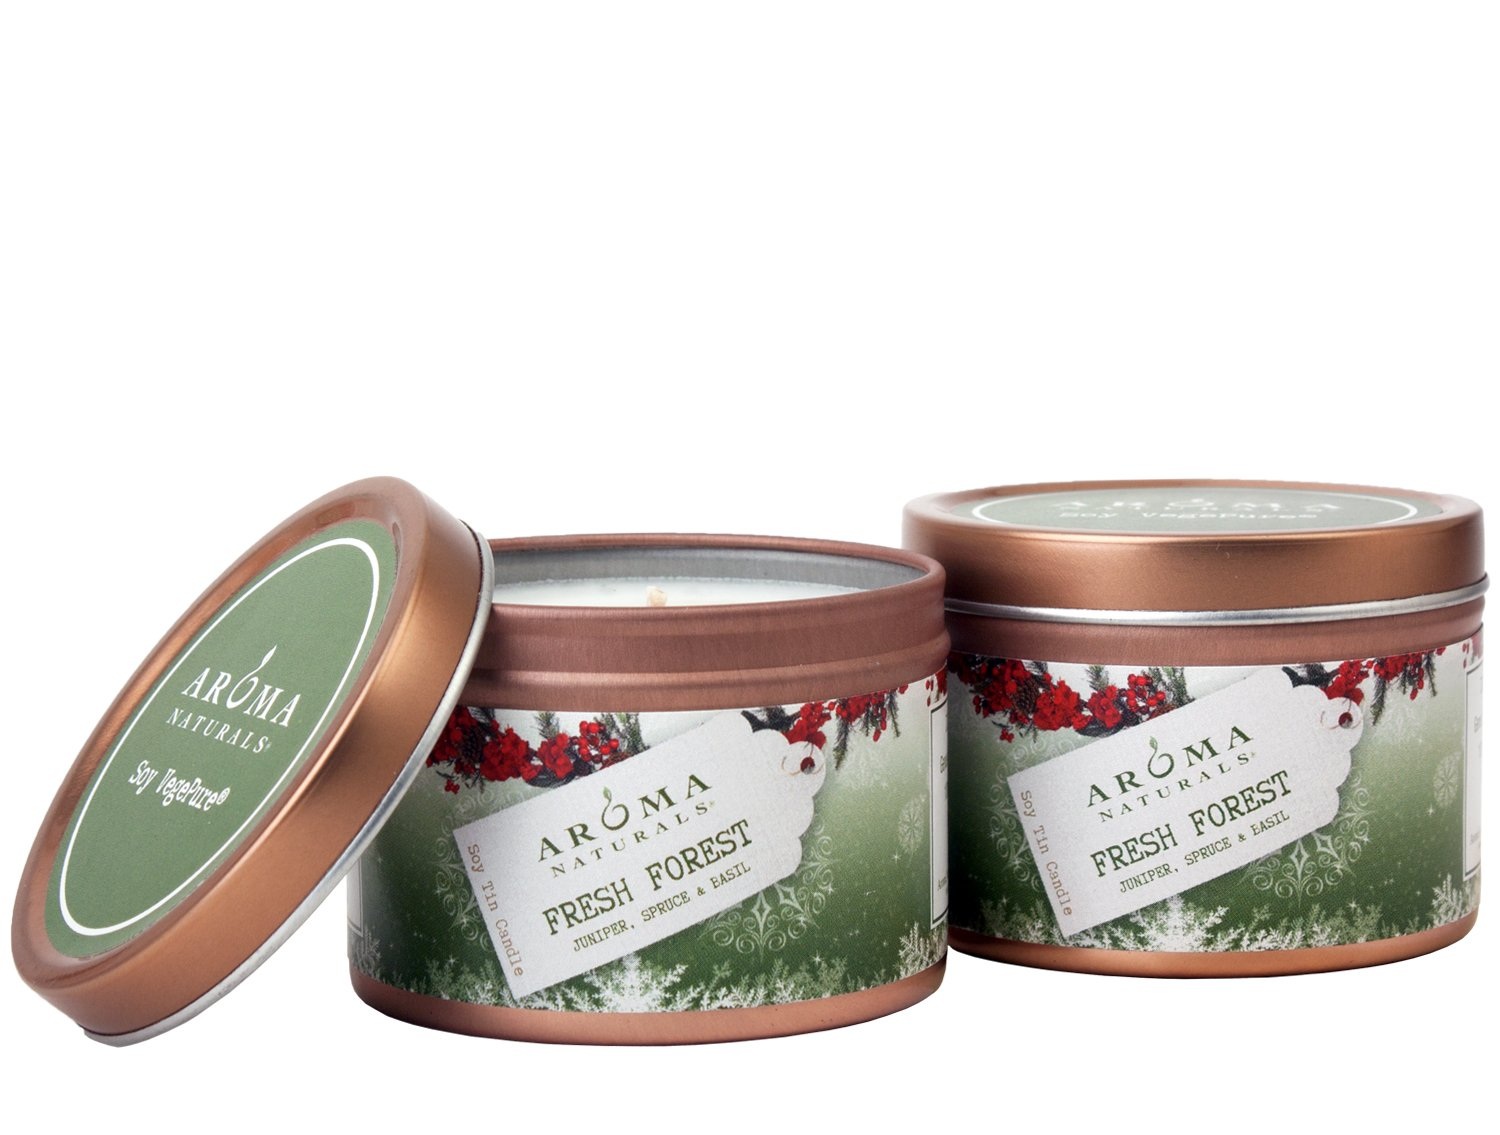 Aroma Naturals Tin Candle Soy Essential Oil with Juniper, Spruce and Basil, Natural Evergreen Holiday, 2 Count